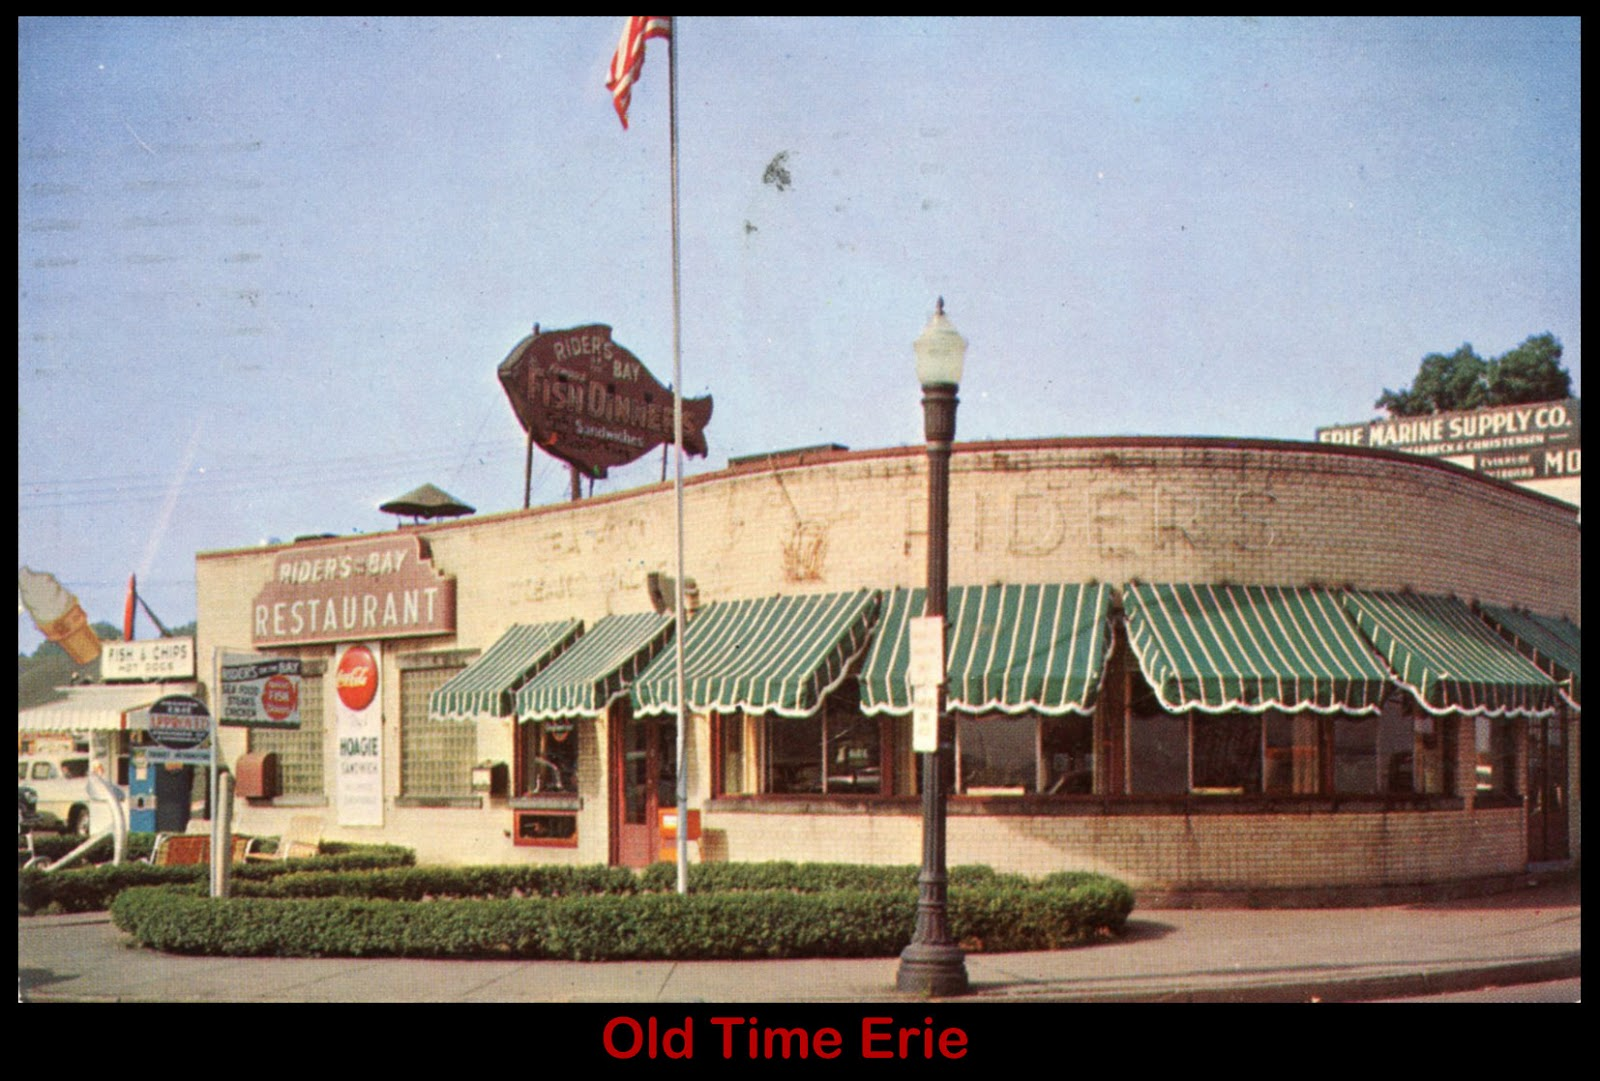 Old Time Erie: January 2013